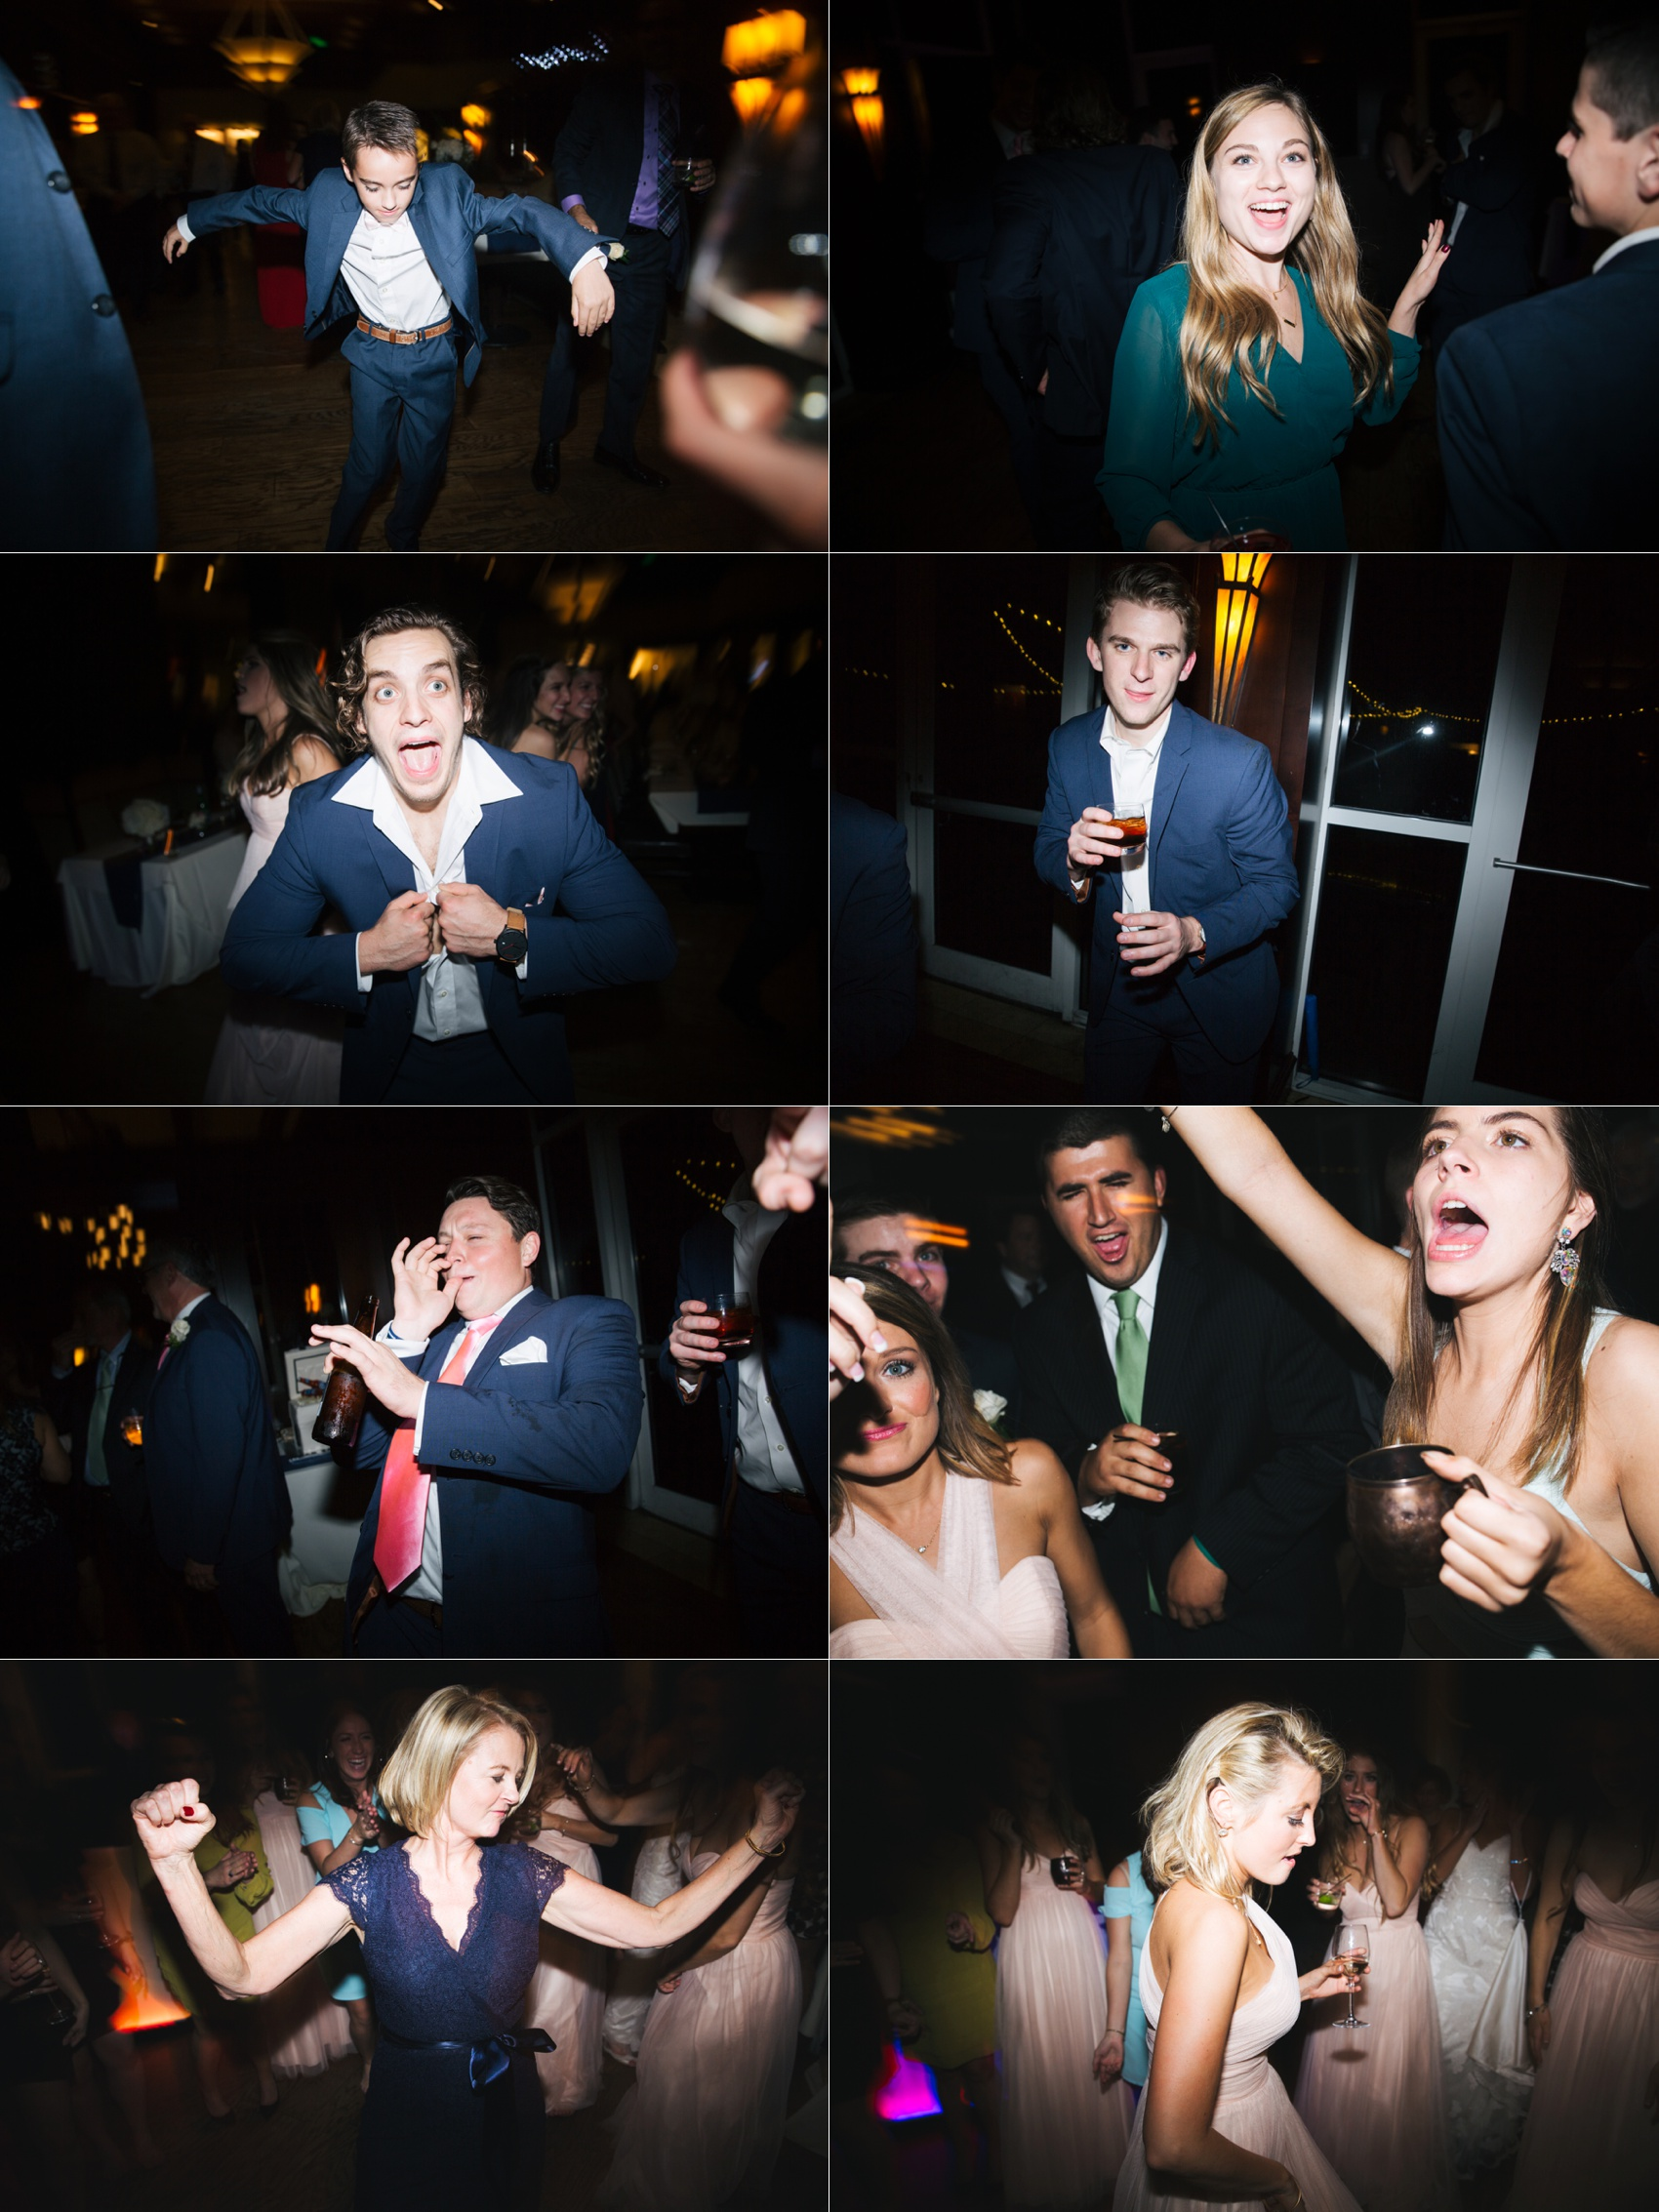 vero beach wedding alec lindsay-42